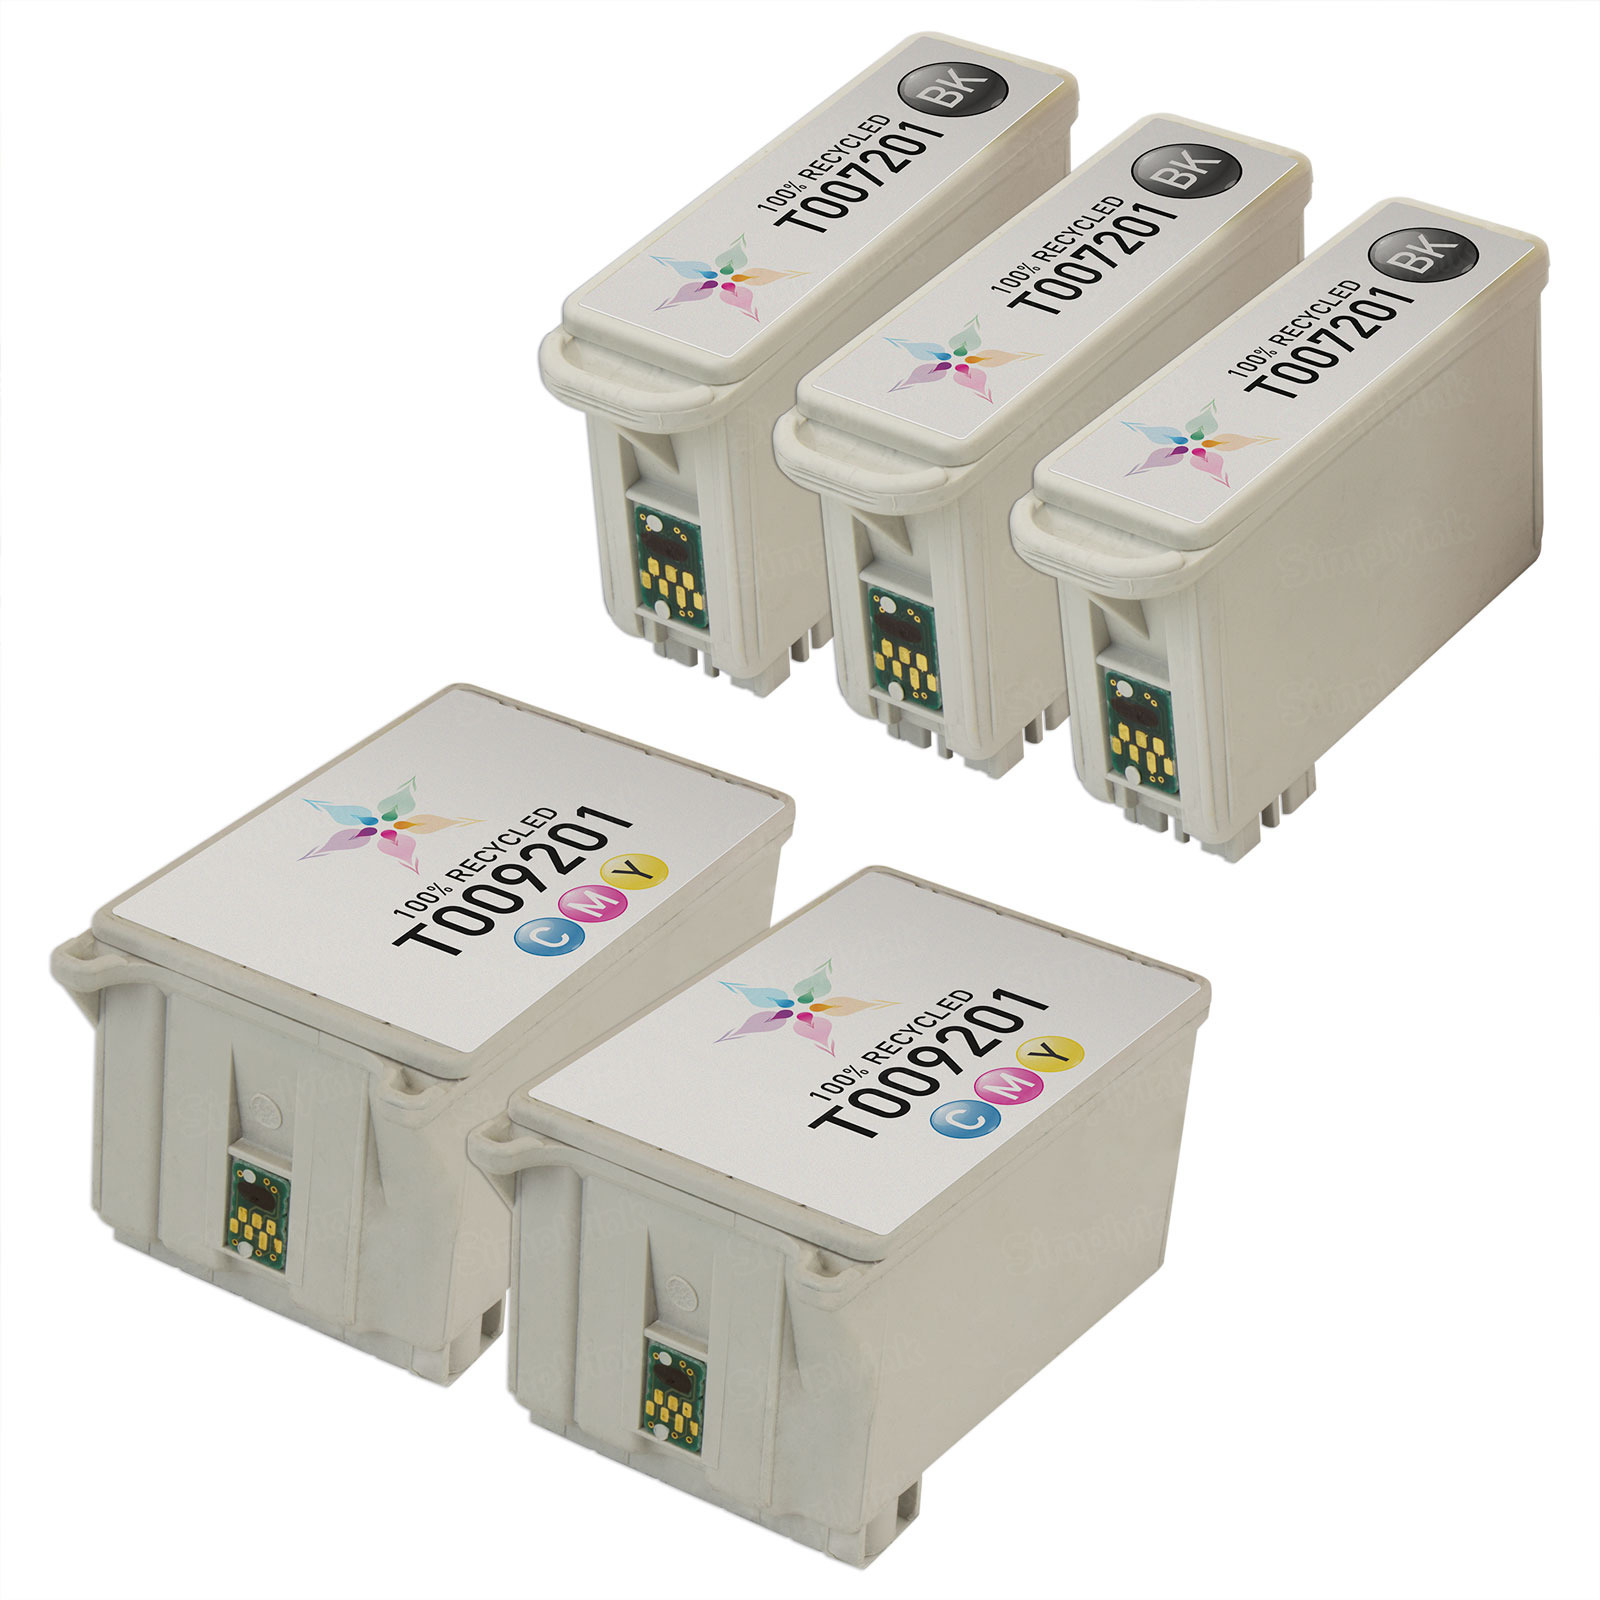 Inkjet Supplies for Epson Printers - Remanufactured Bulk Set of 5 Ink Cartridges 3 Black Epson T007201 (T007) and 2 Color Epson T009201 (T009)